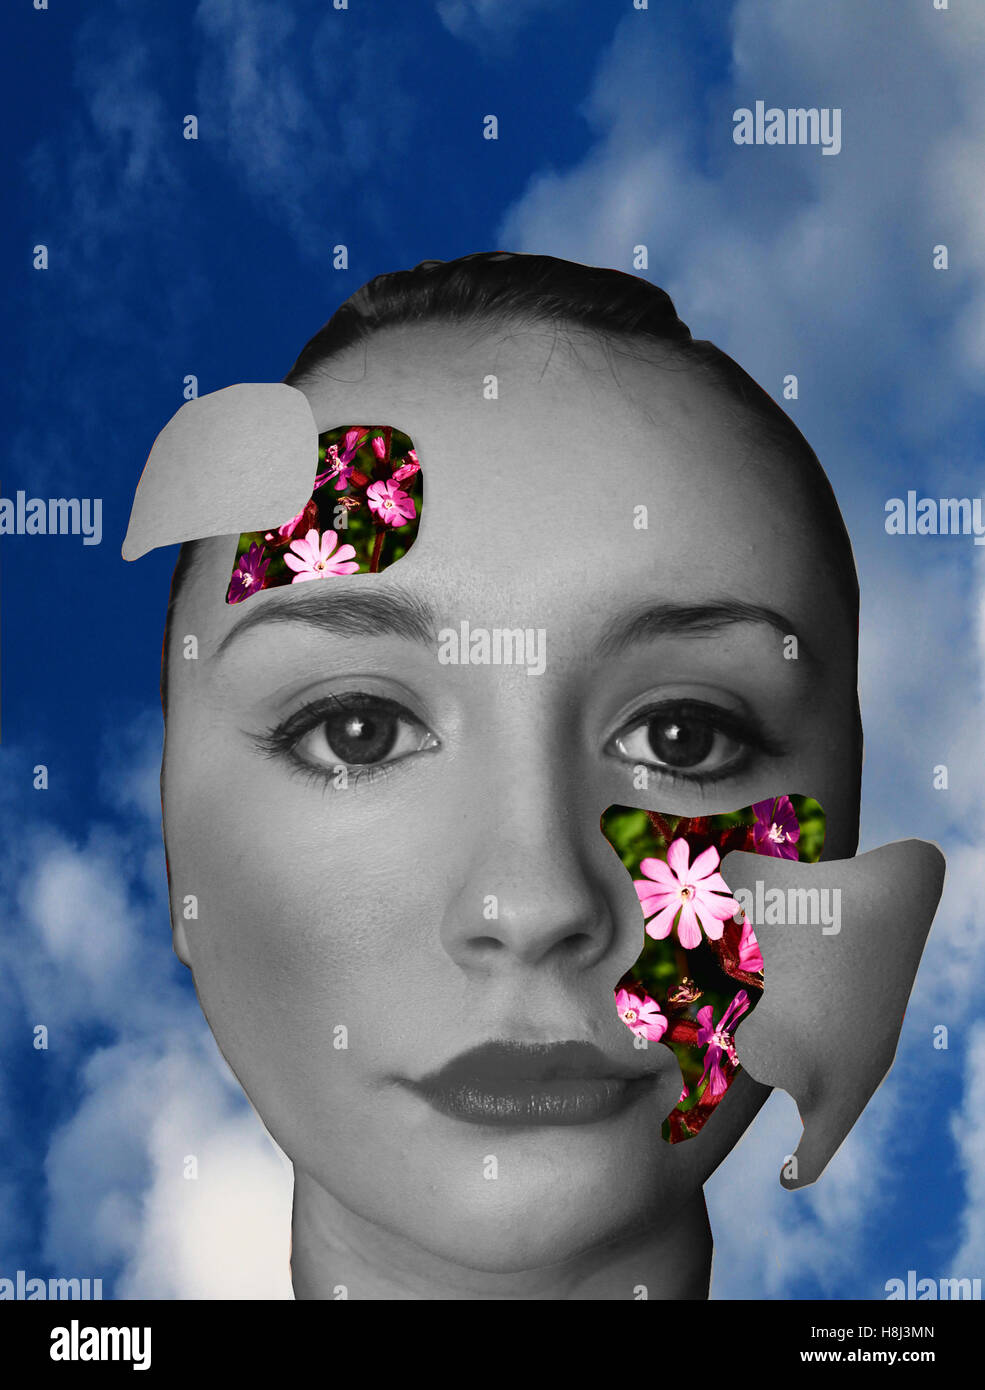 Daydreamer: a photoshop manipulation - Stock Image